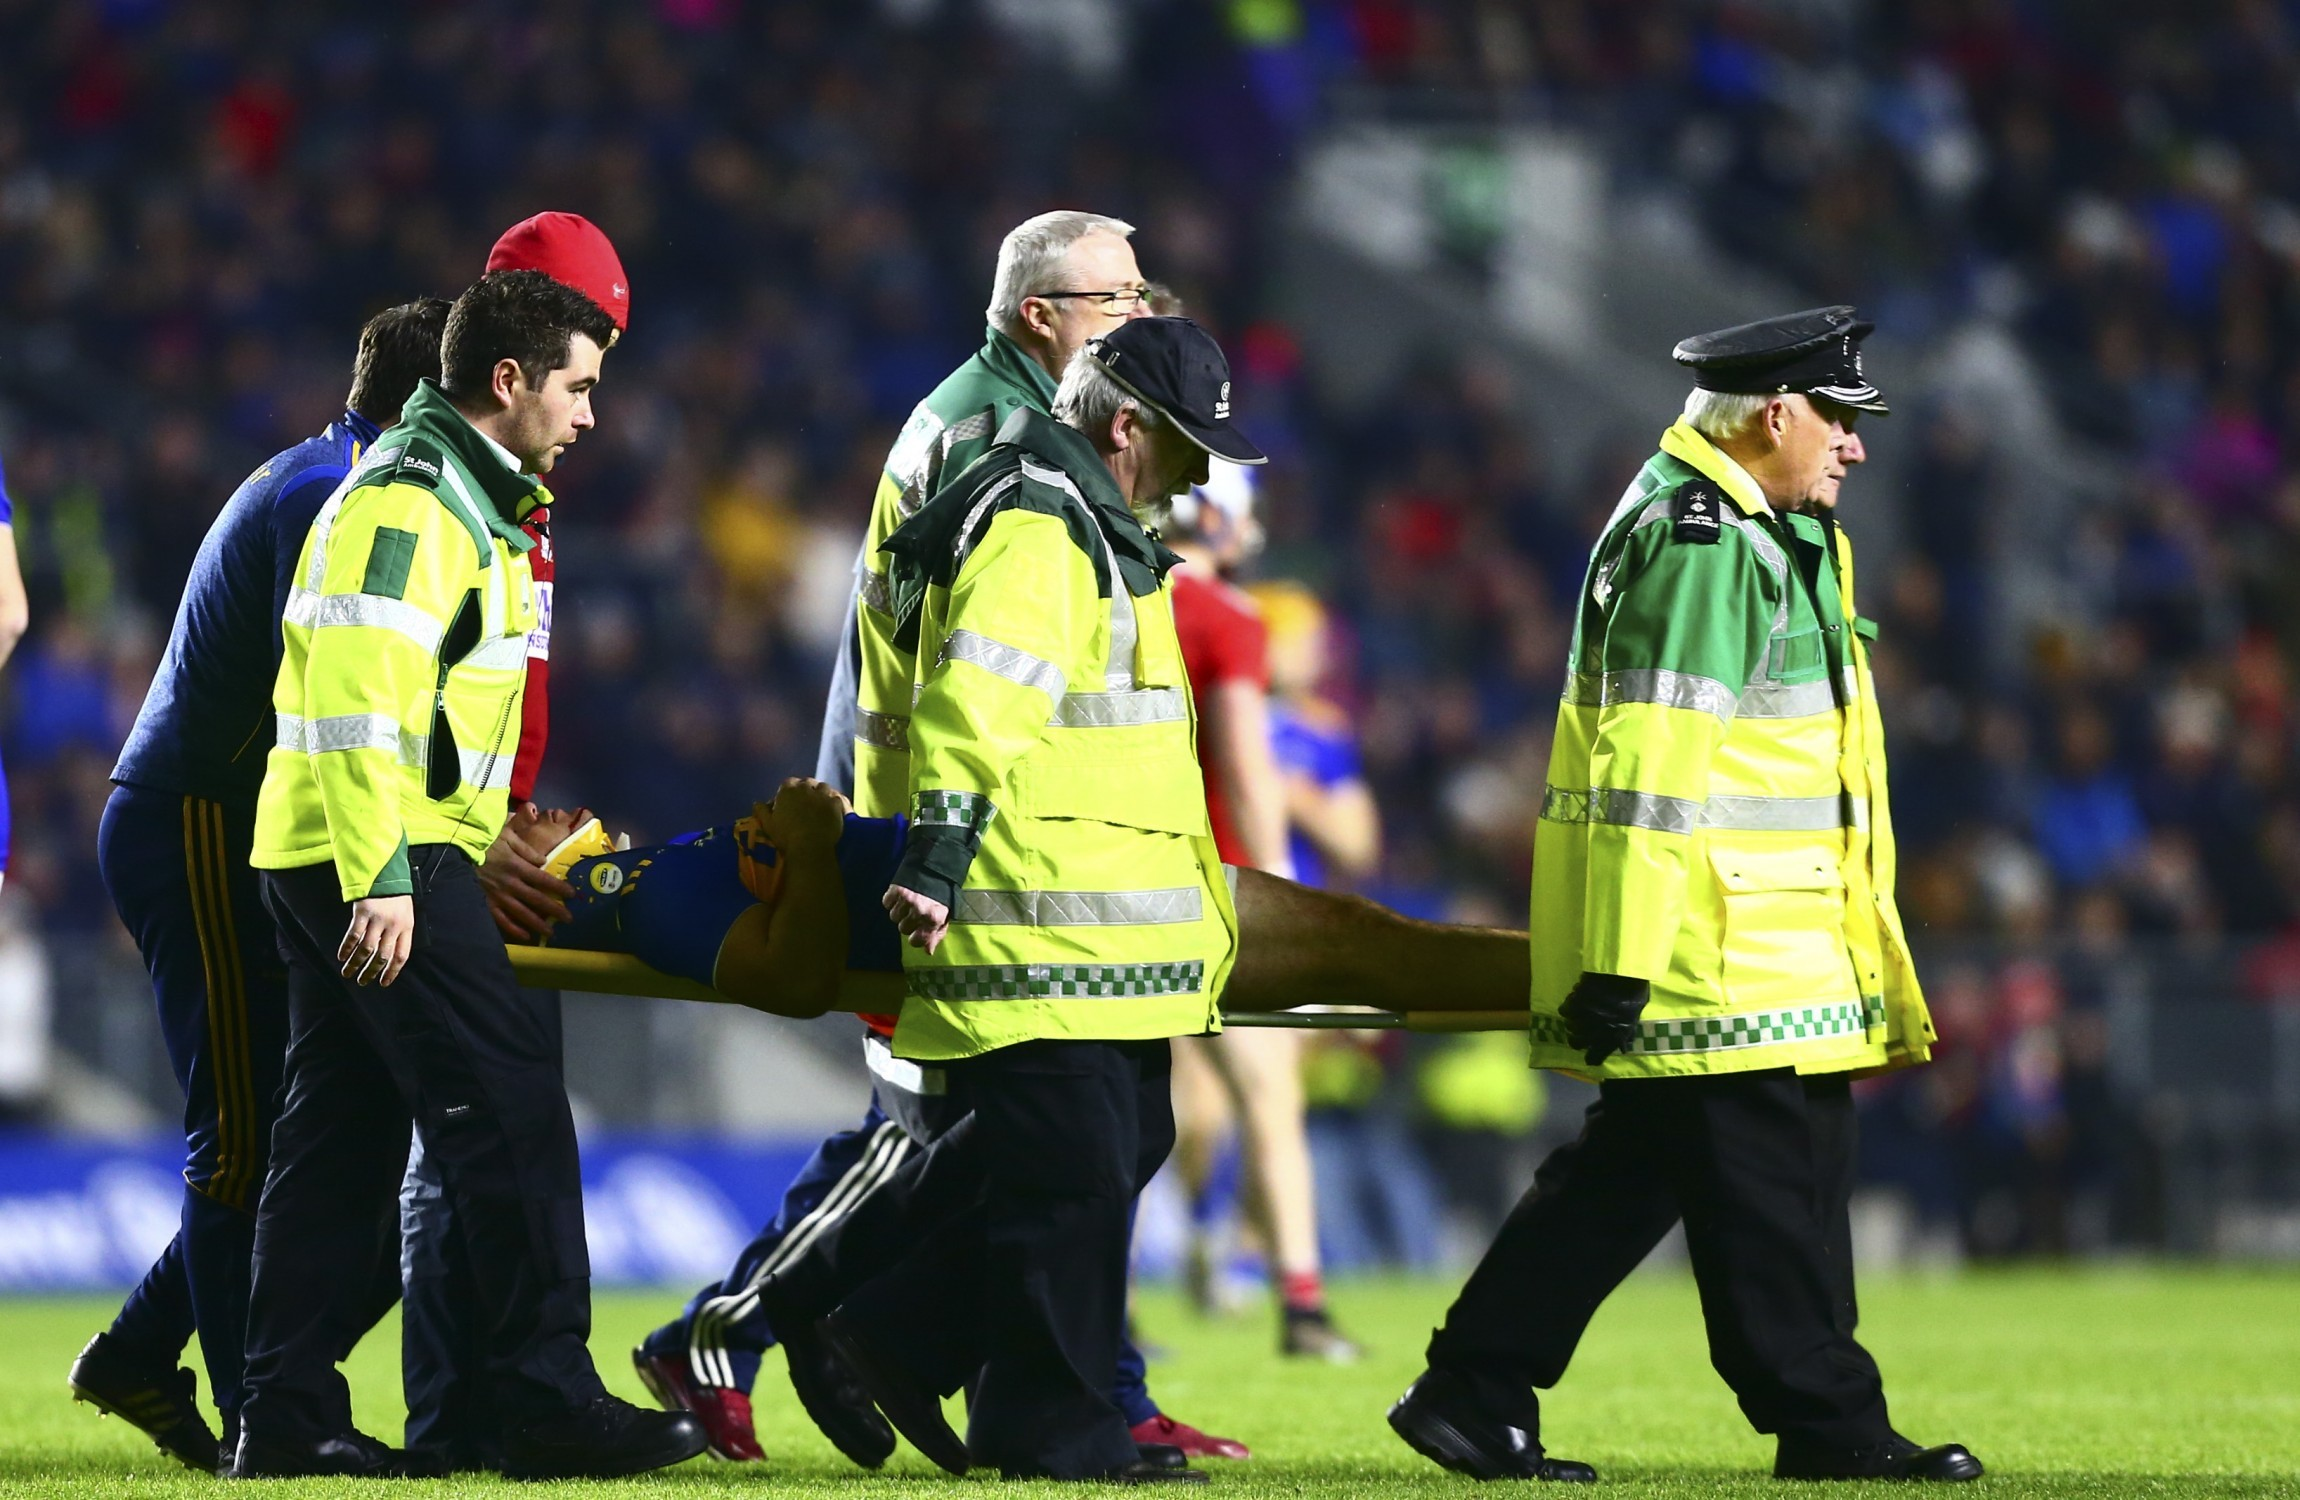 He a bit battered and bruised but hopefully nothing more  - positive update on Tipp ODwyer